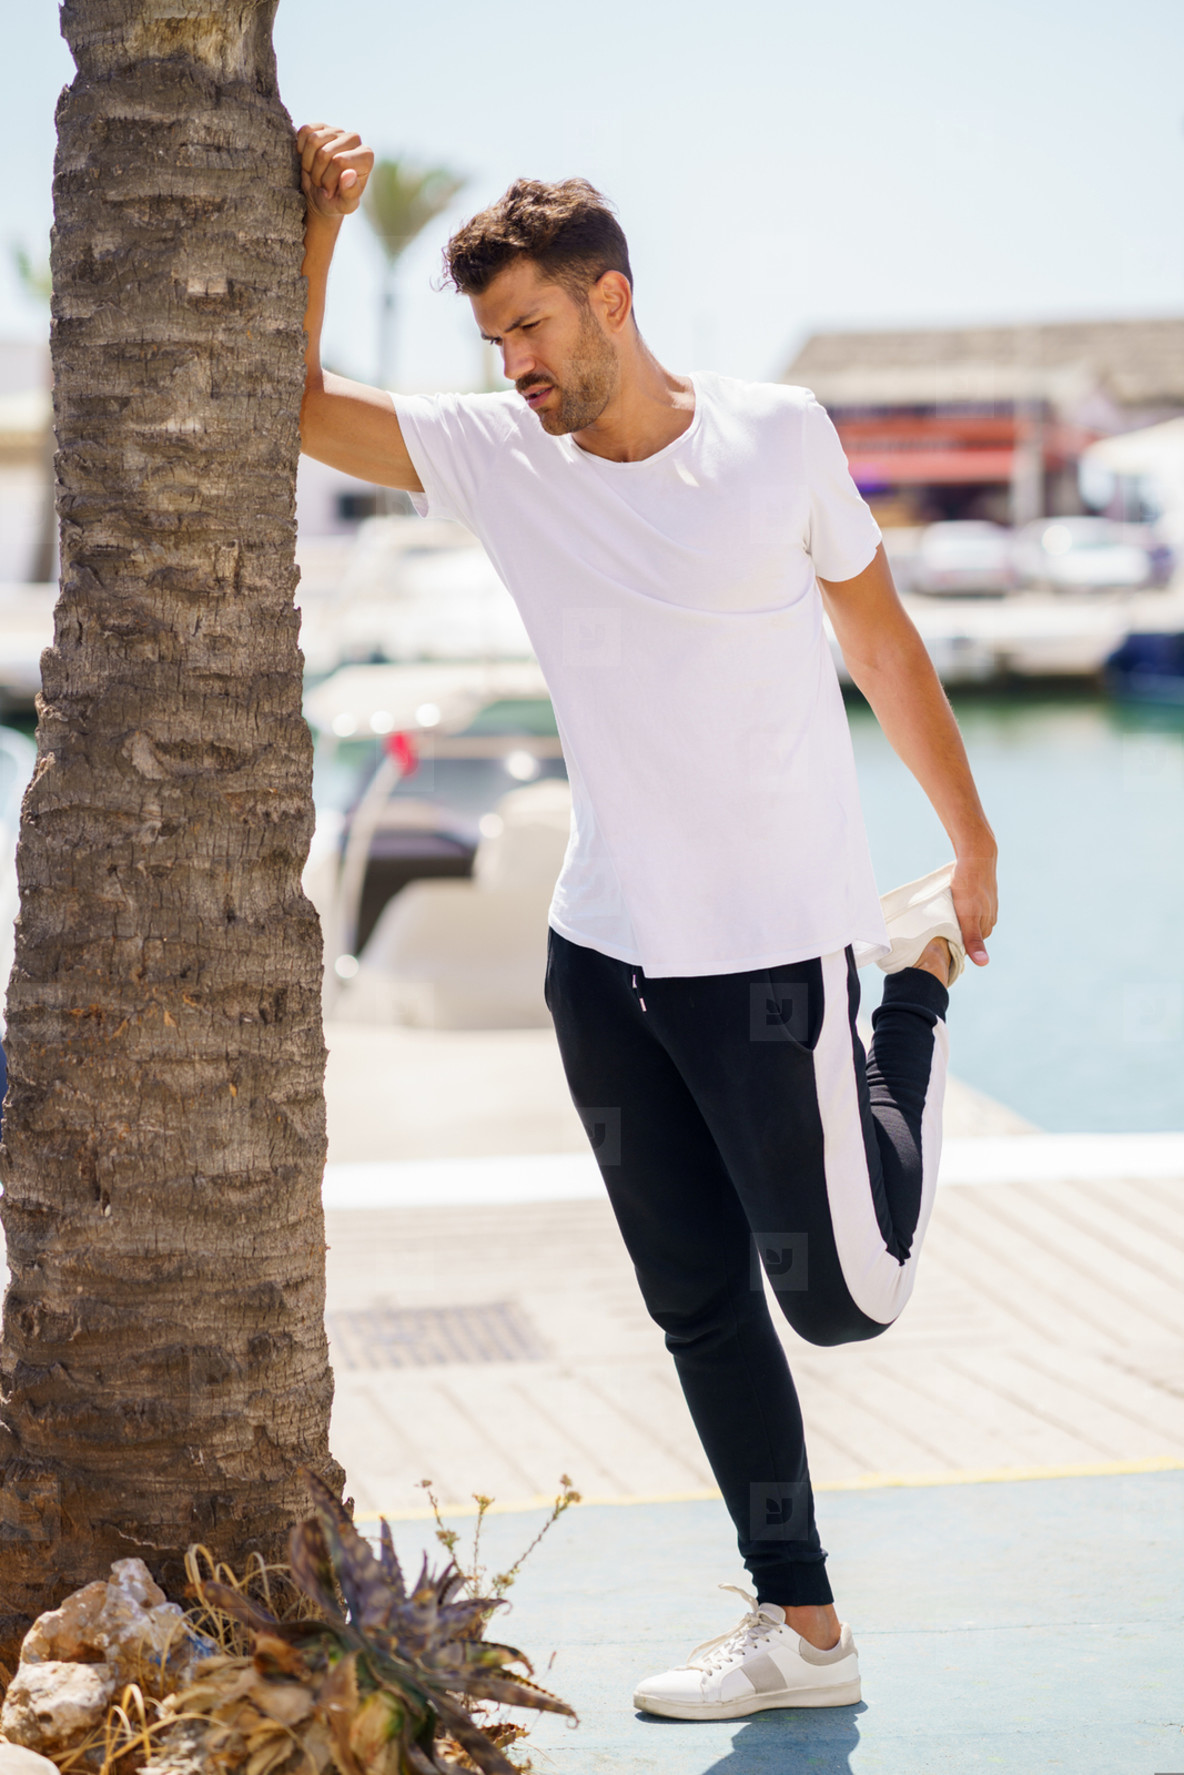 Man stretching after exercise in a harbour